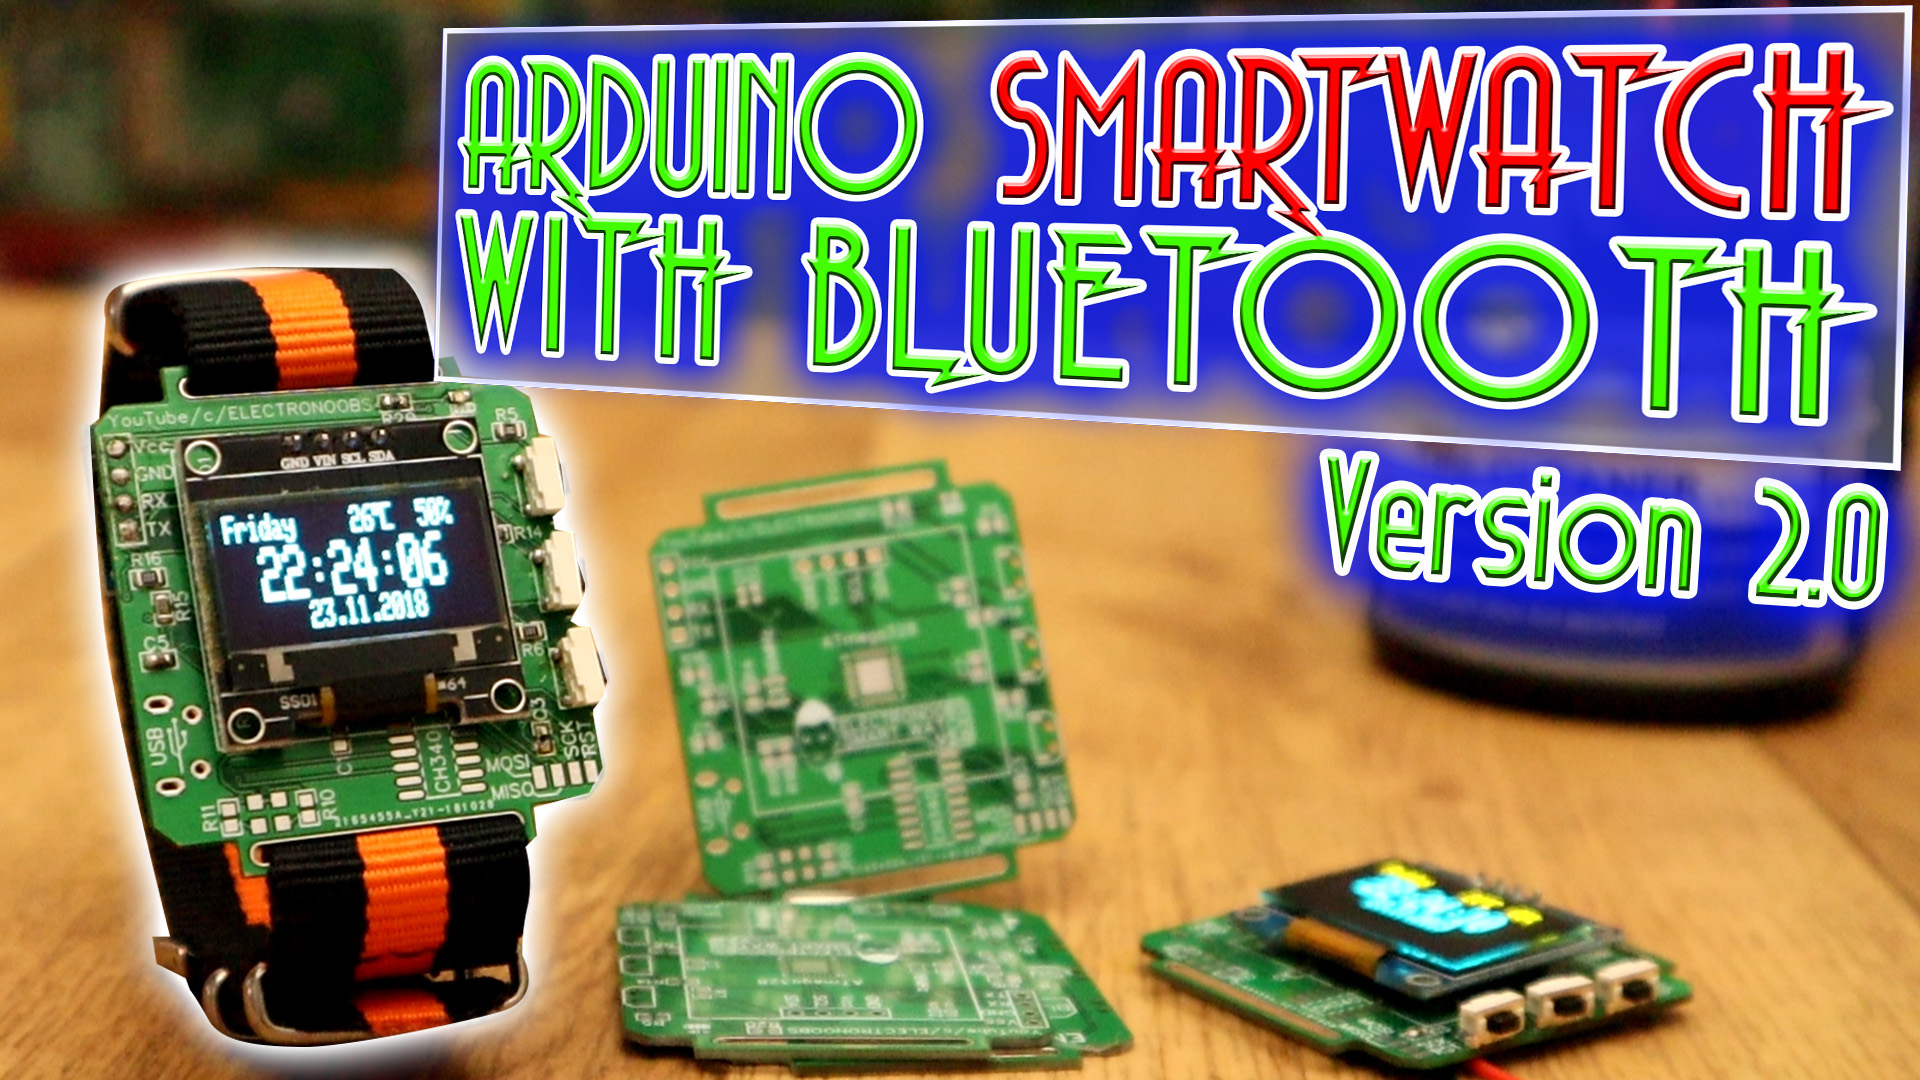 Arduino Smartwatch Bluetooth Code Oled Display Rtc An New Browser Based Electronics Builder Easyeda Open